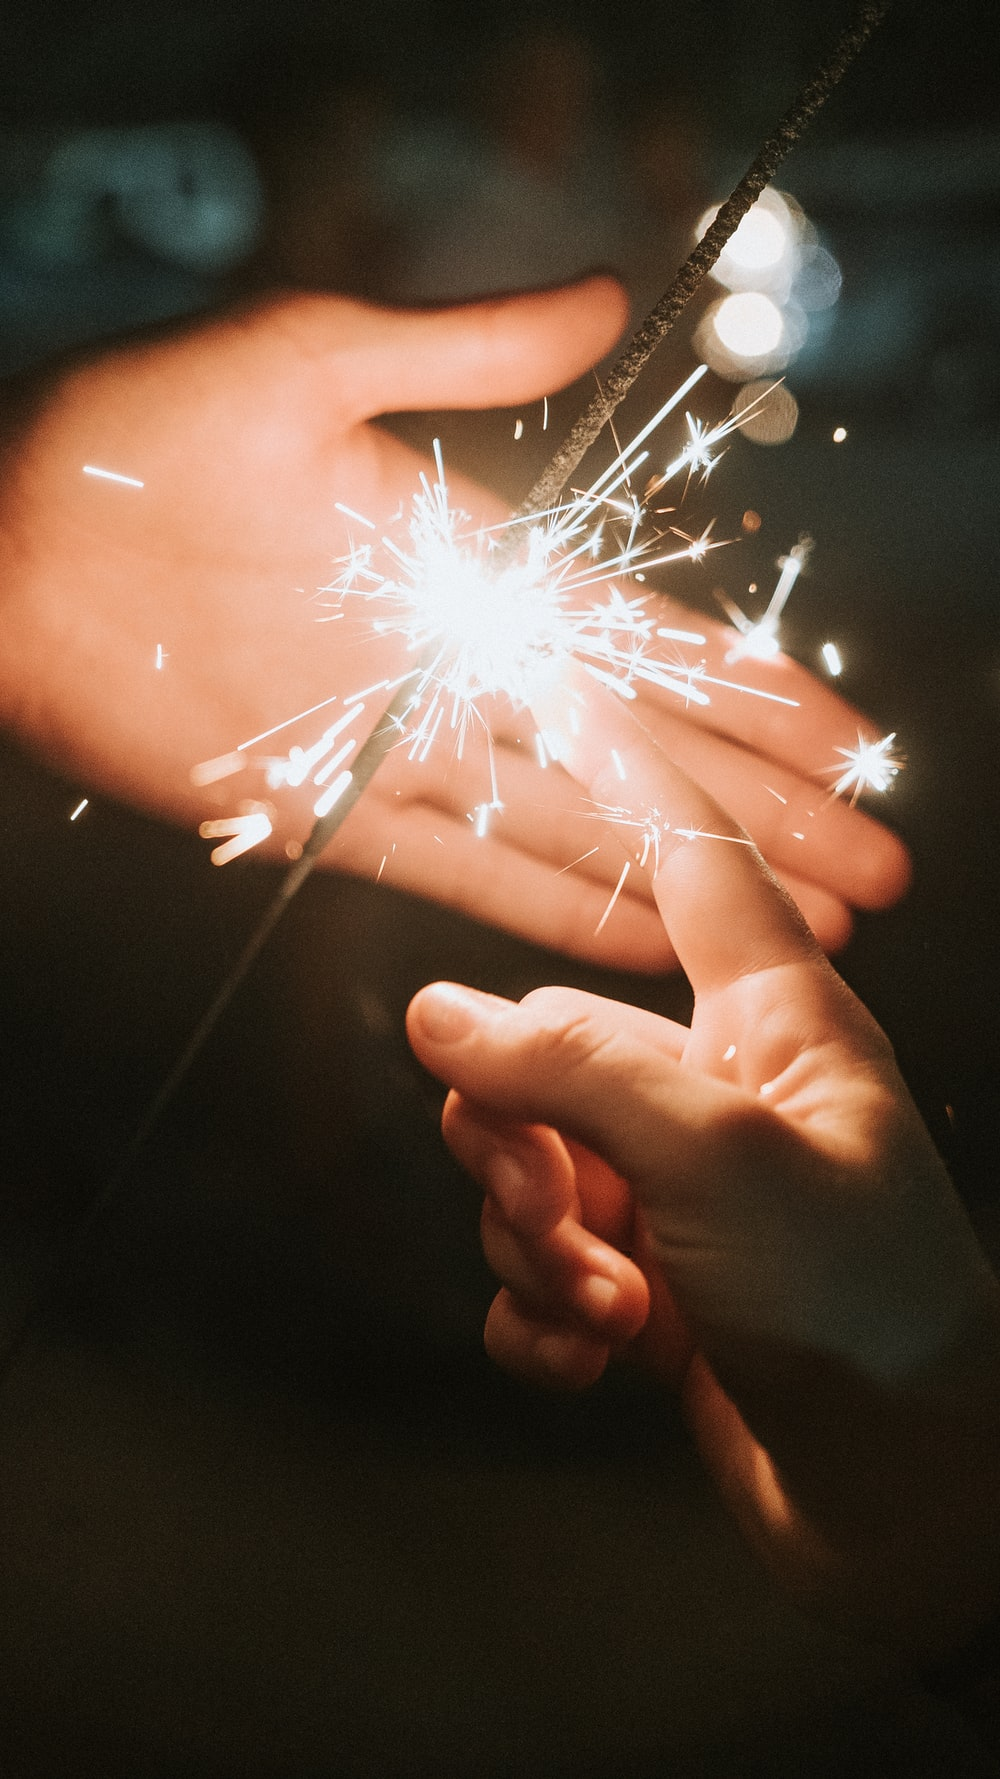 person holding fire cracker